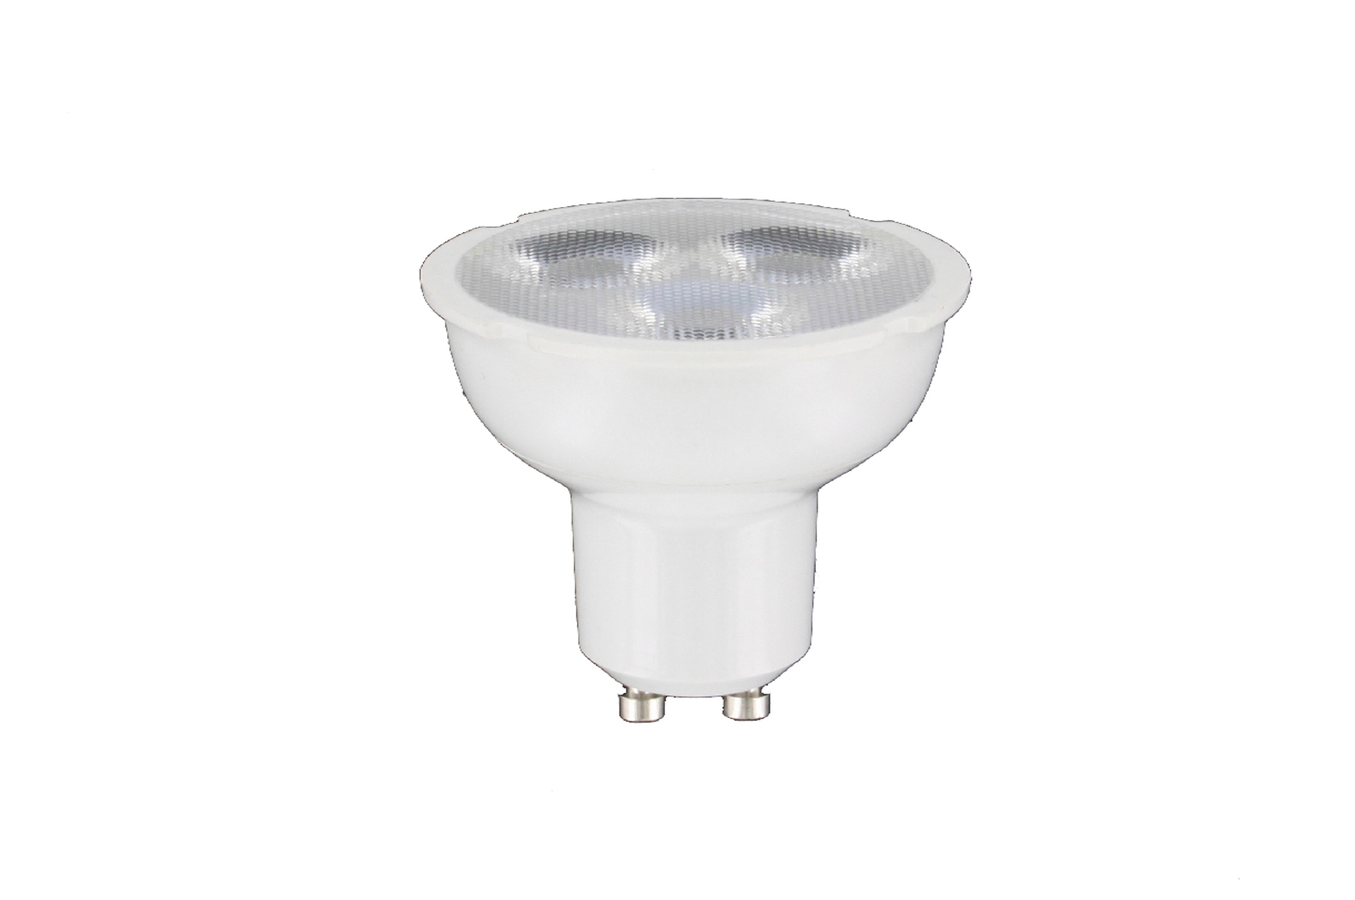 Ampoule led nityam spot gu10 6w 4019024 darty - Ampoule led pour spot ...